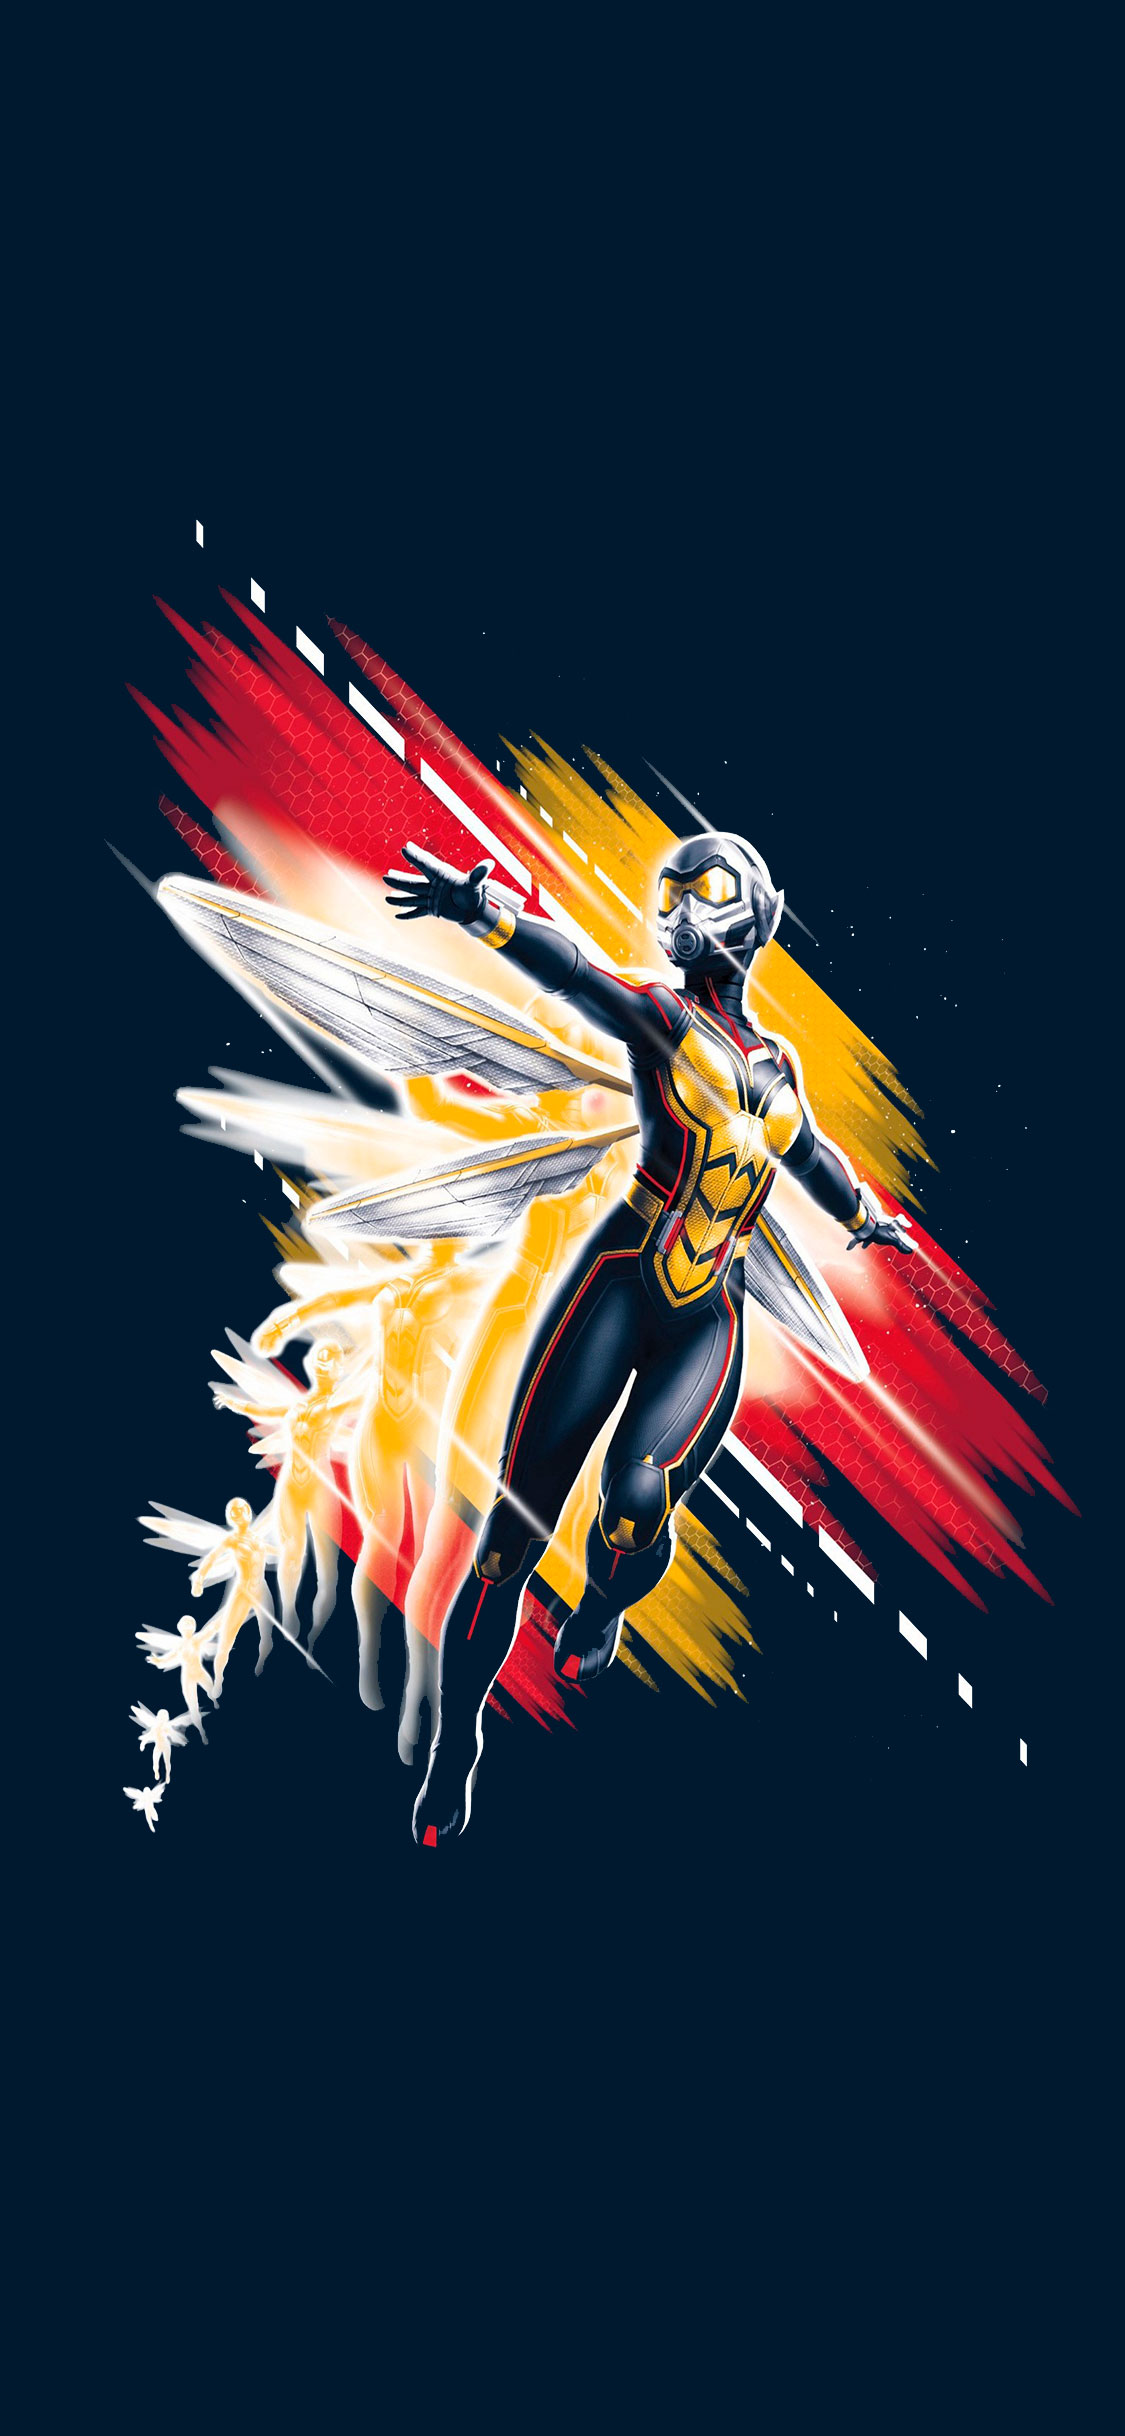 iPhone wallpaper ant man wasp Ant Man